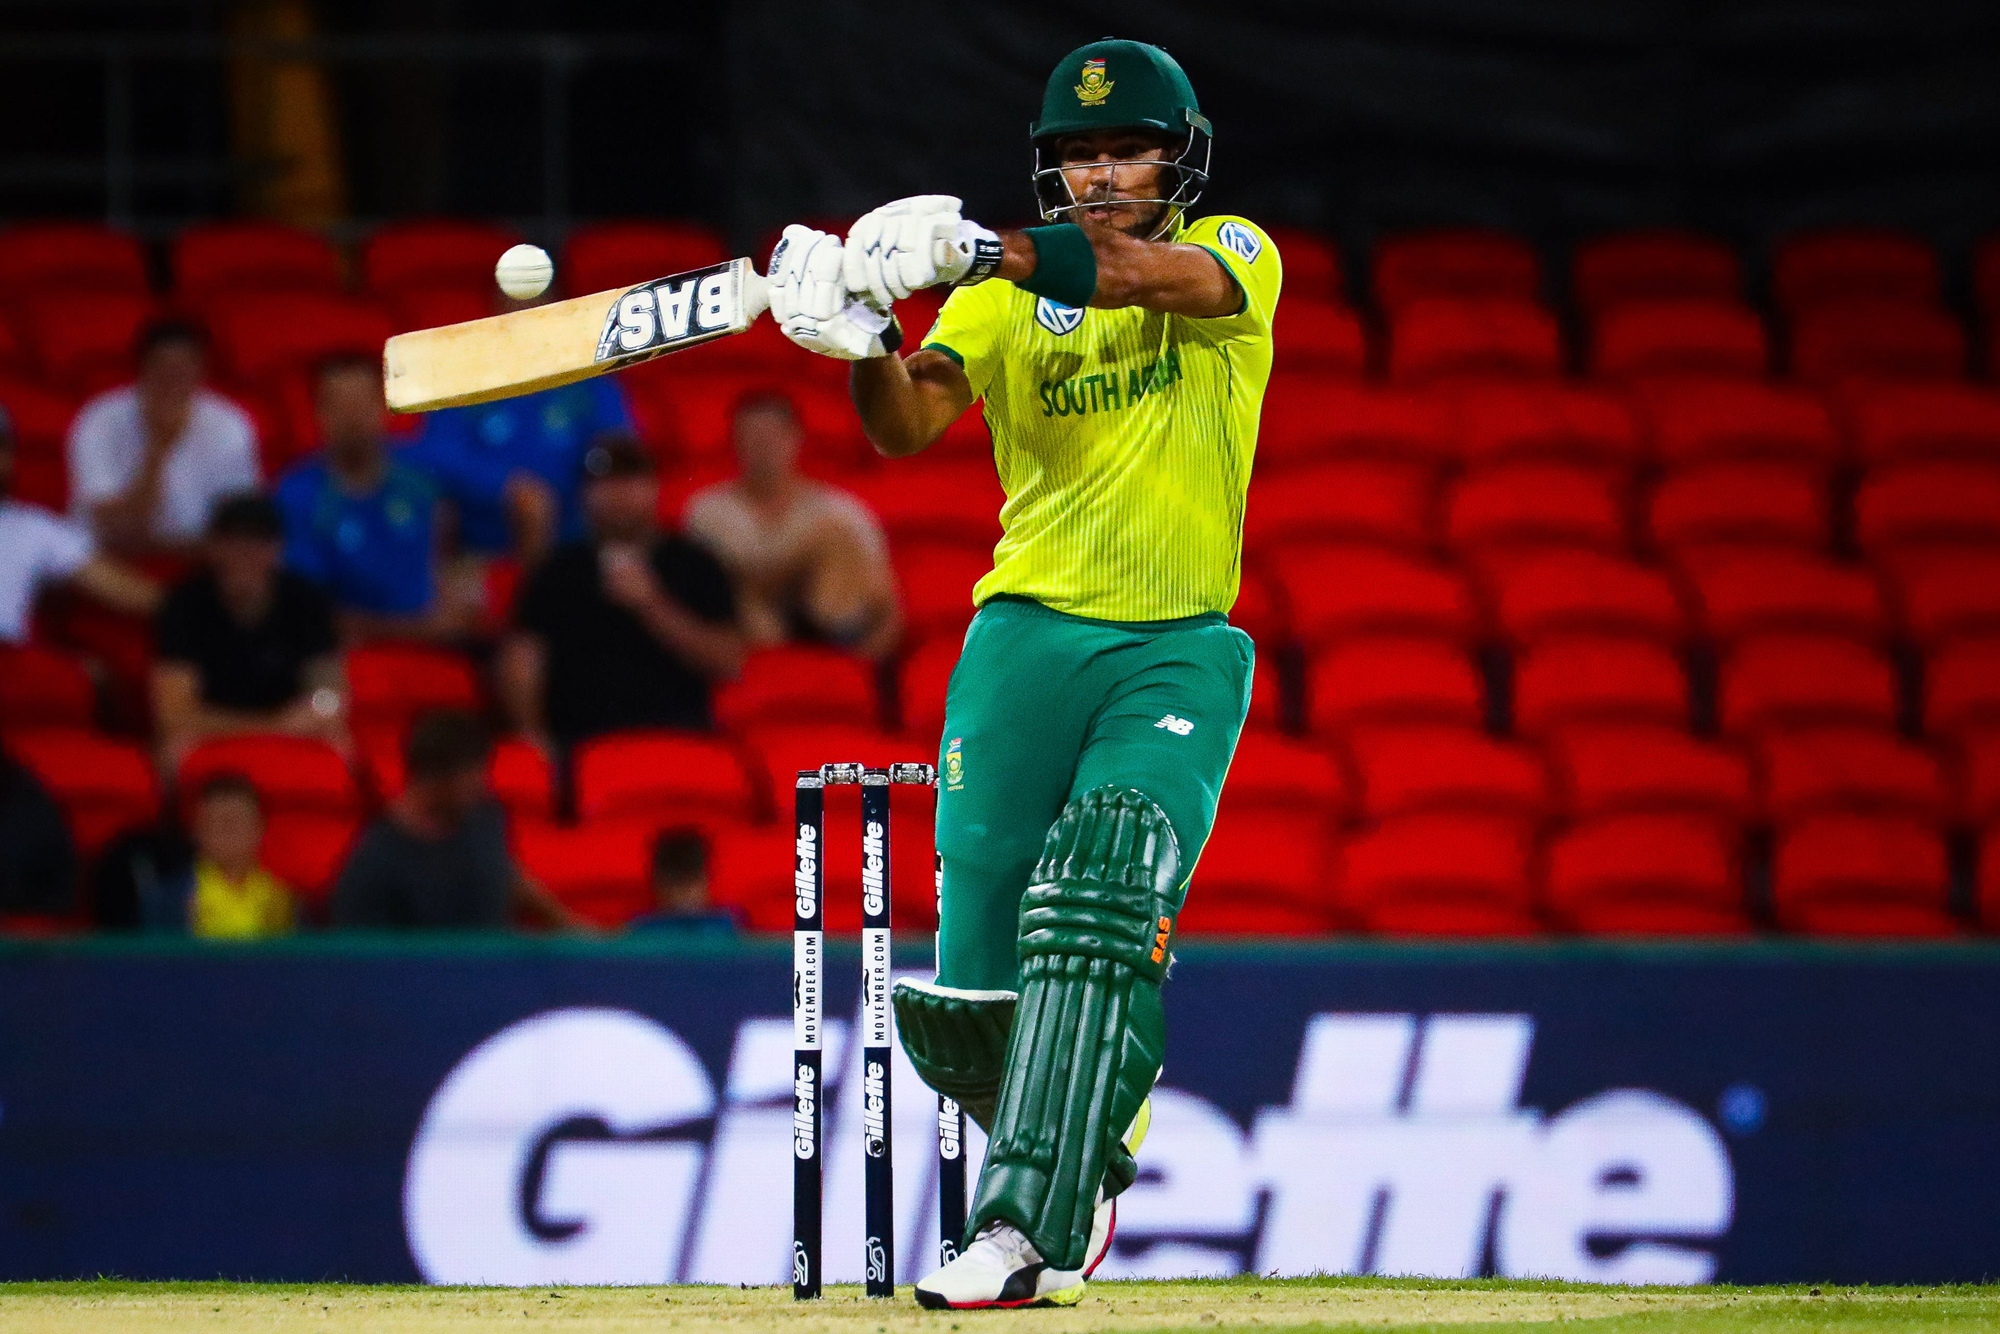 Reeza Hendricks of South Africa plays a shot during the T20 international cricket match between Australia and South Africa at Metricon Stadium on the Gold Coast on November 17, 2018. (Photo by Patrick HAMILTON / AFP) / -- IMAGE RESTRICTED TO EDITORIAL USE